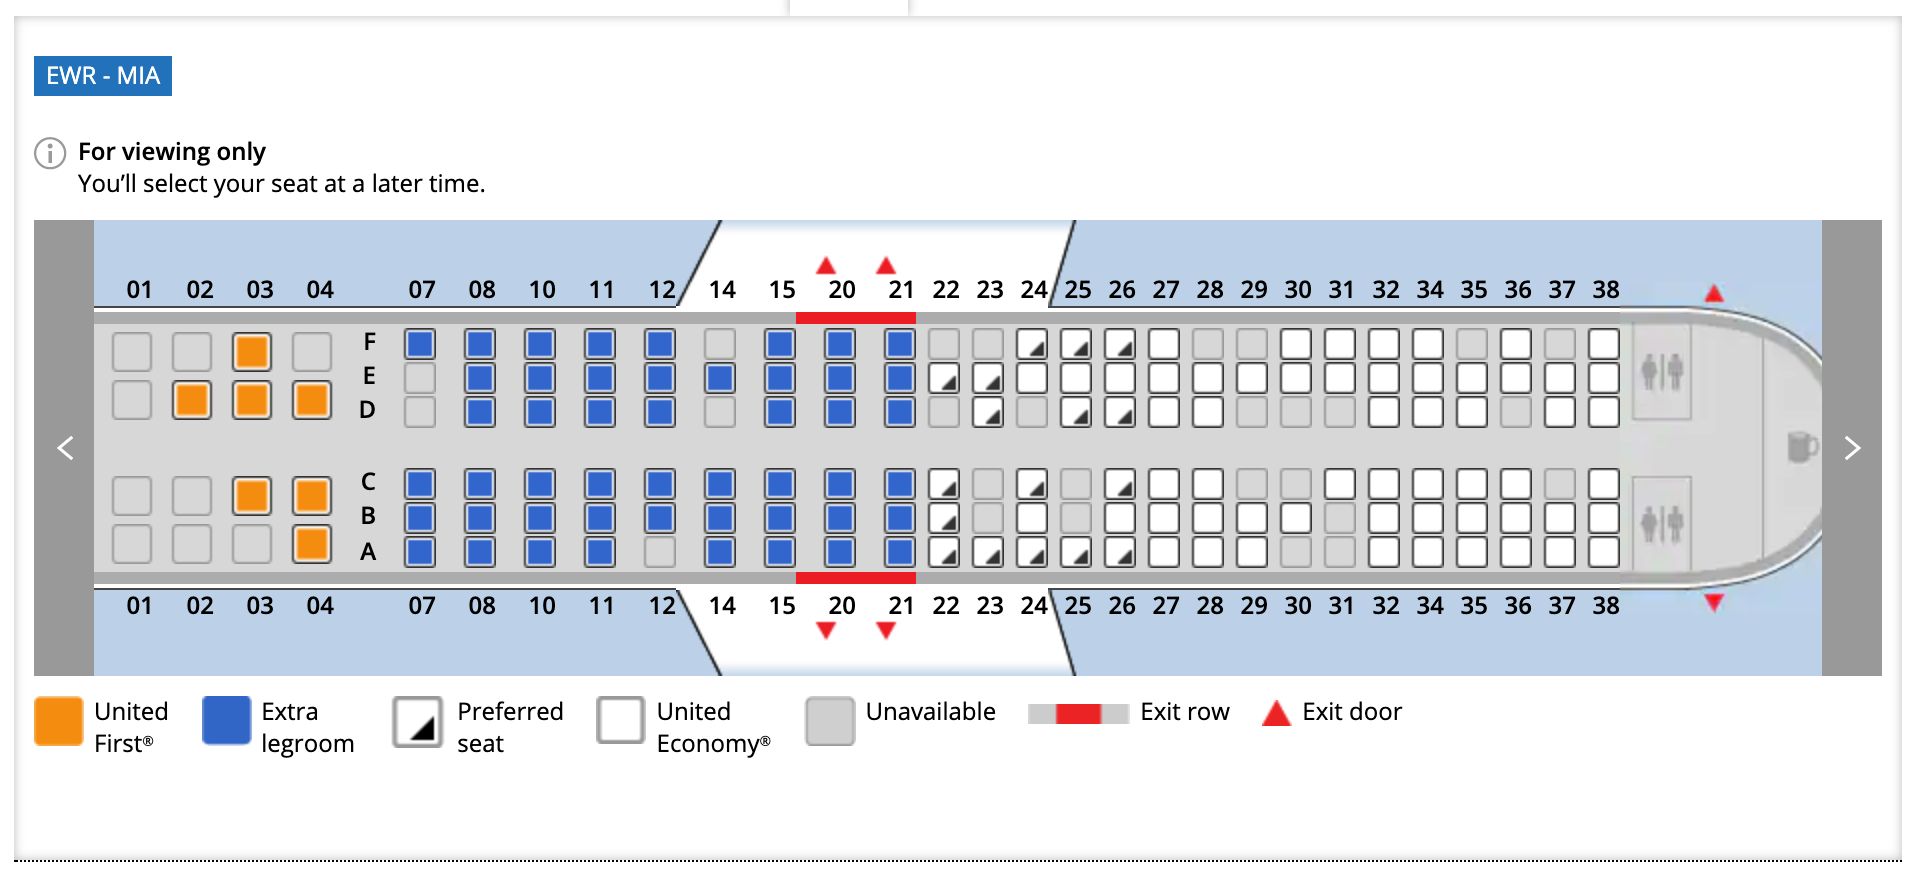 Newark to Miami United Airlines flight seat assignments March 27, 2020